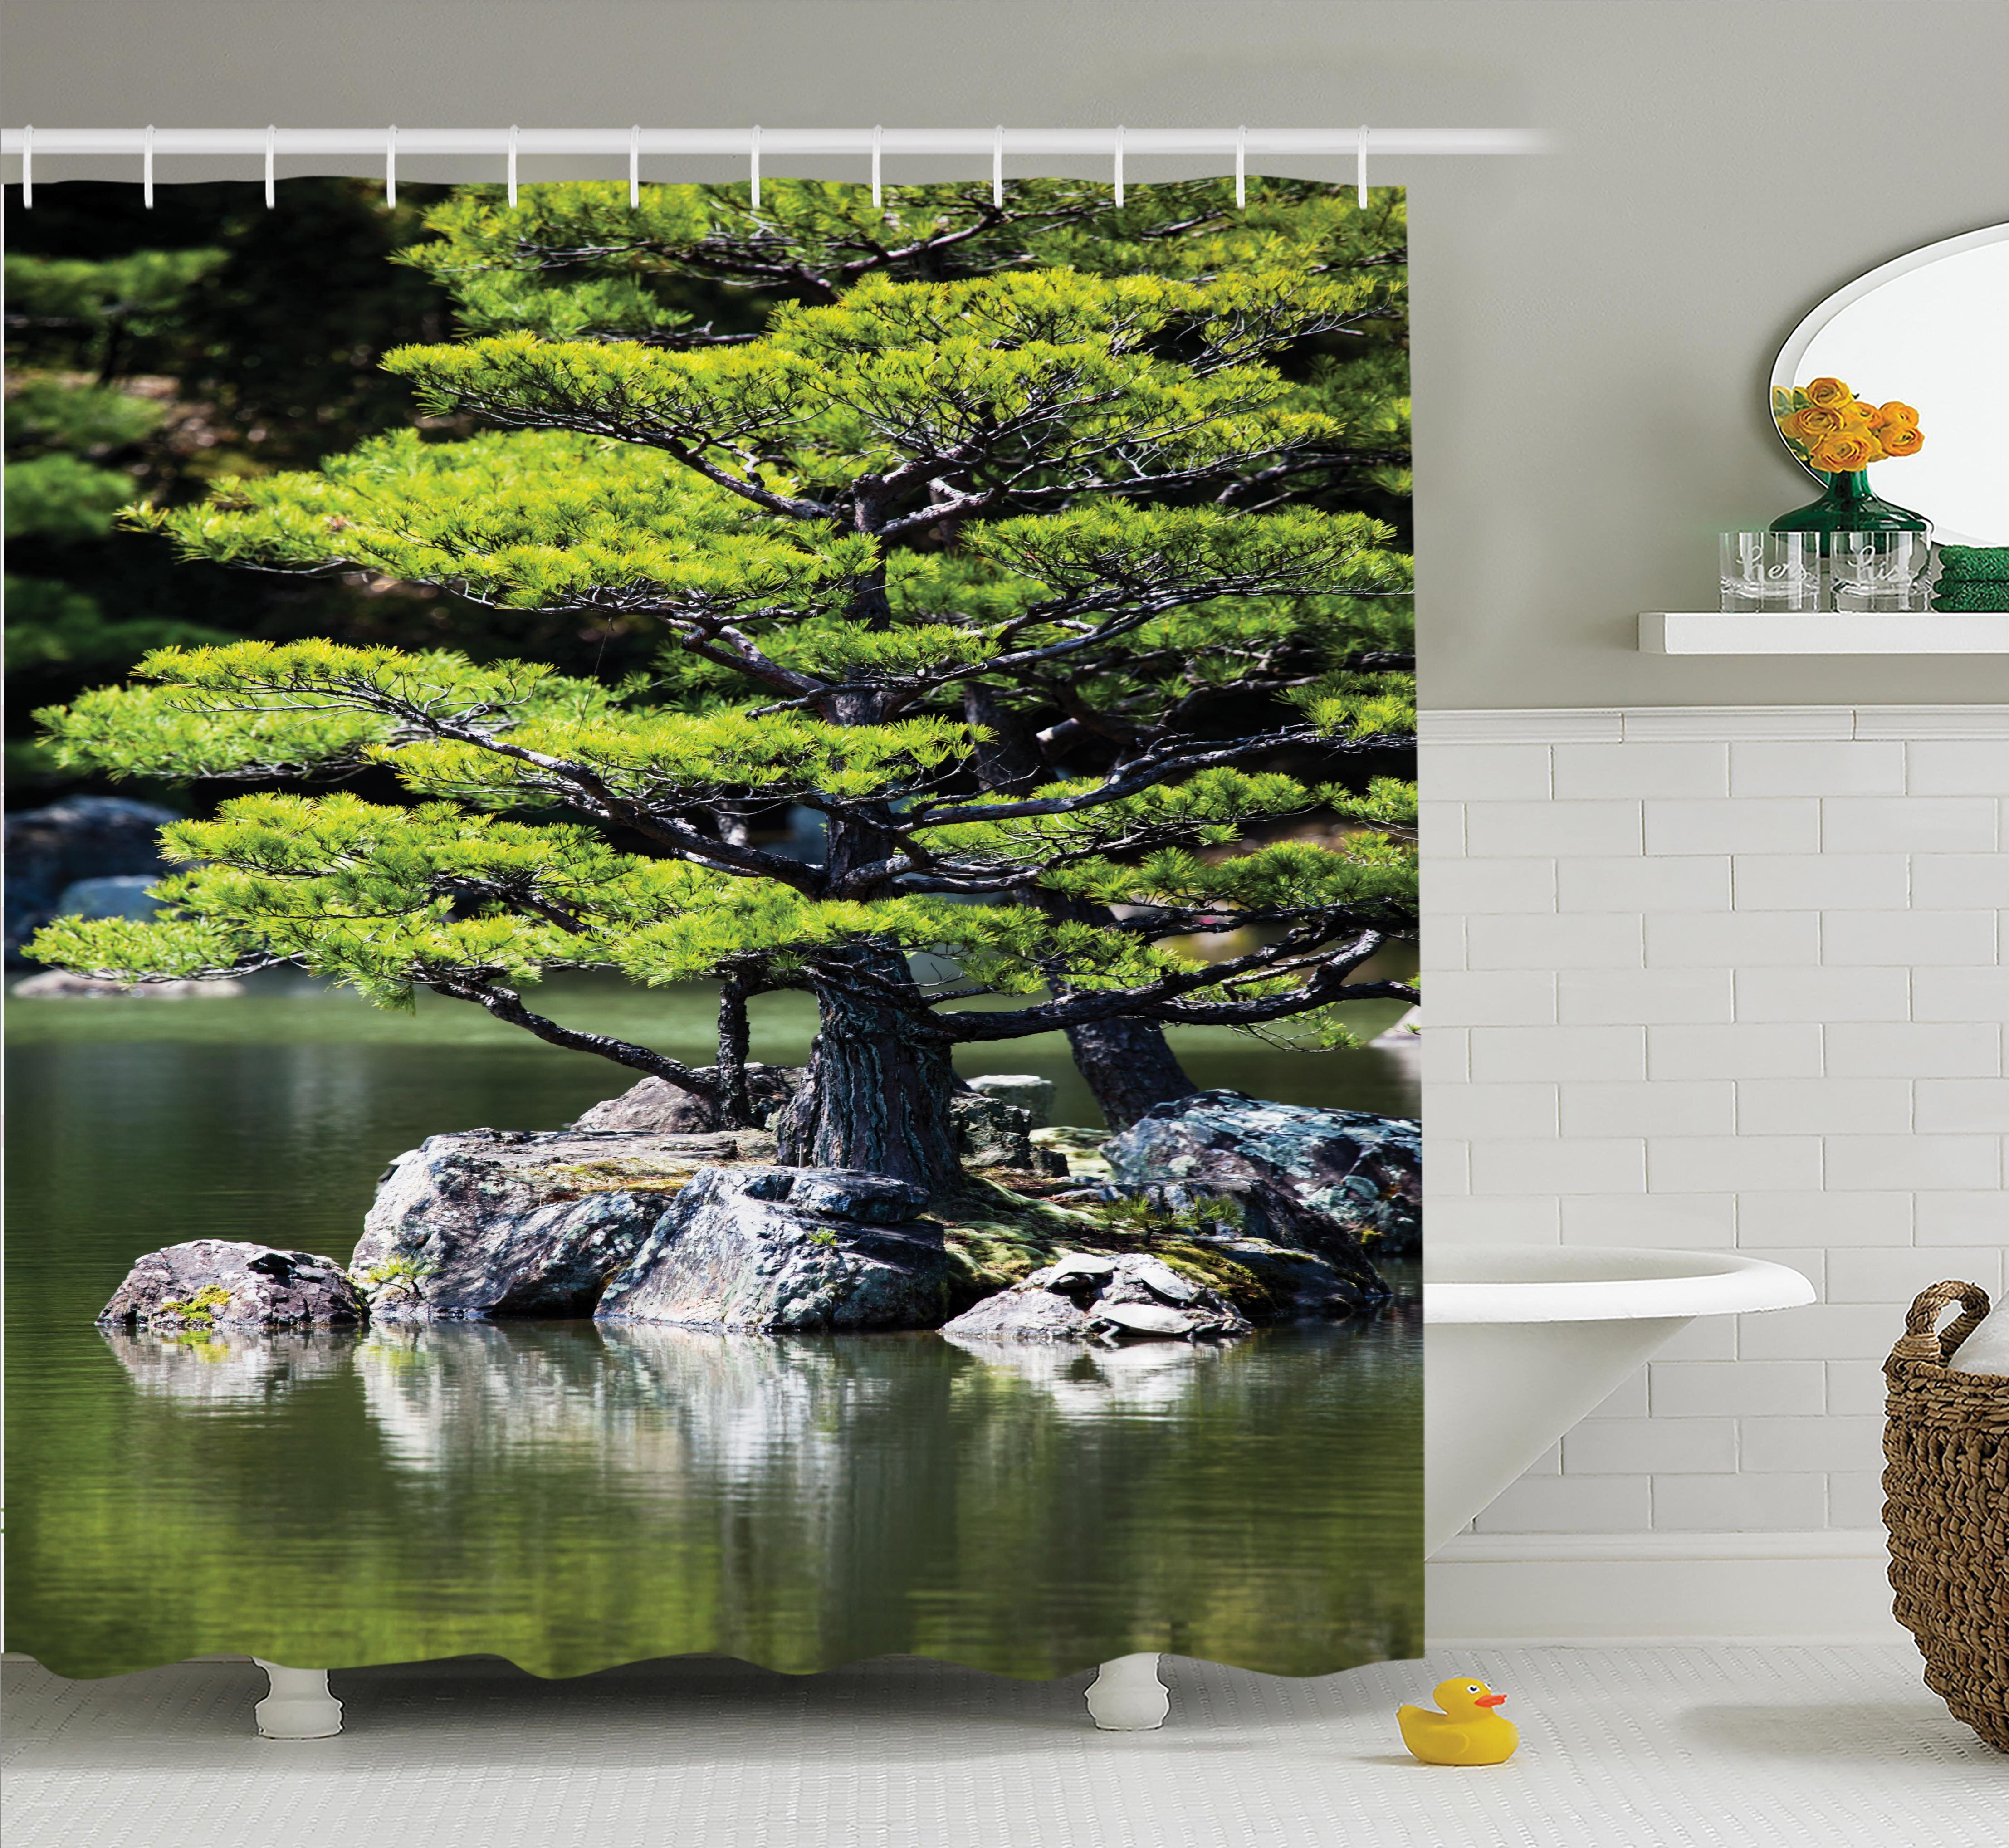 04db0762d5f6 World Menagerie Glenn Pine Tree Lake With Stones Japanese Nature Scenery  With Asia Garden Theme Shower Curtain